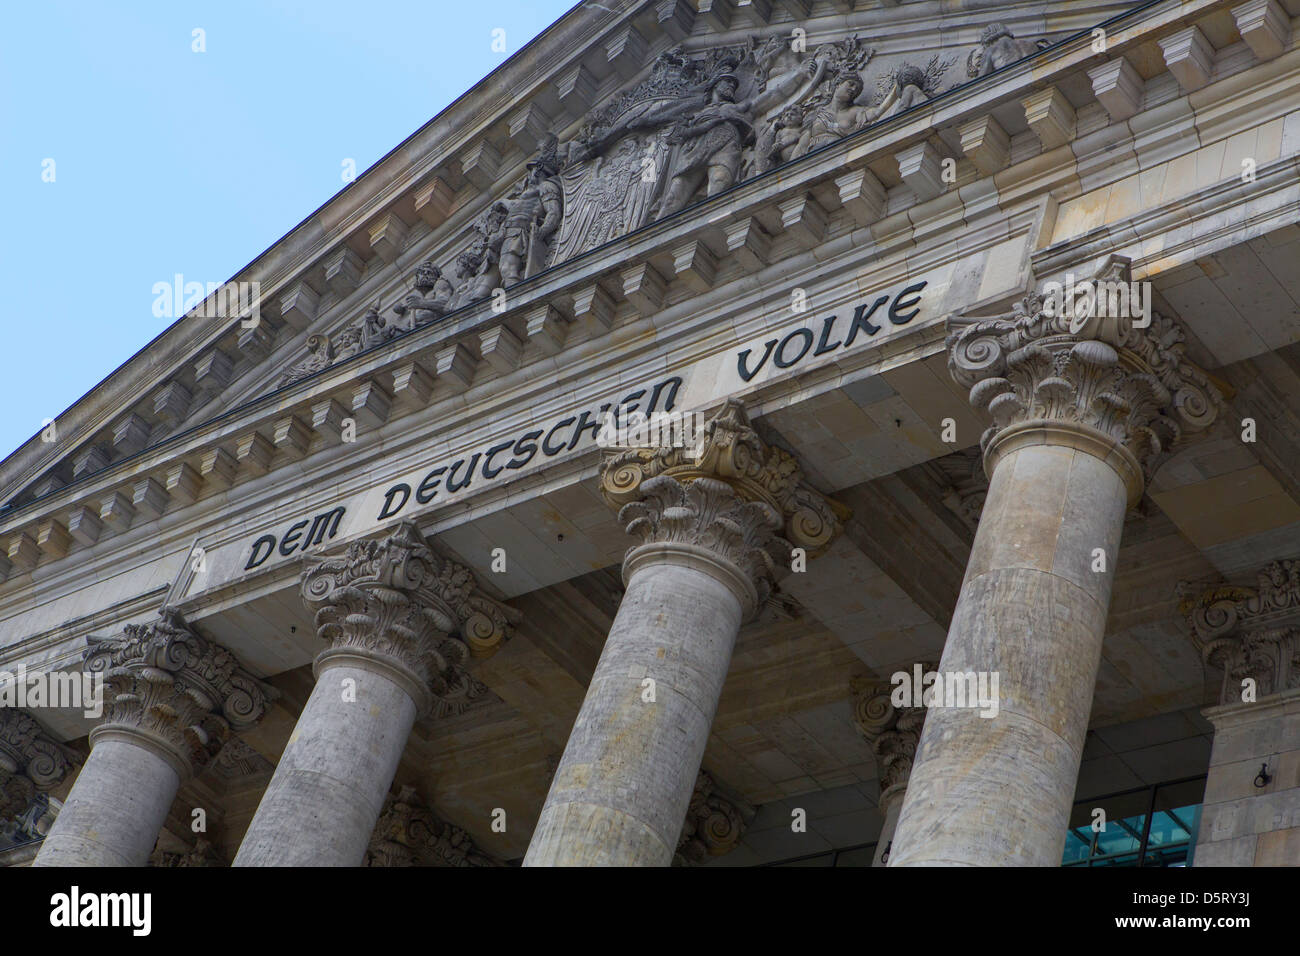 Reichstag north entrance - Stock Image